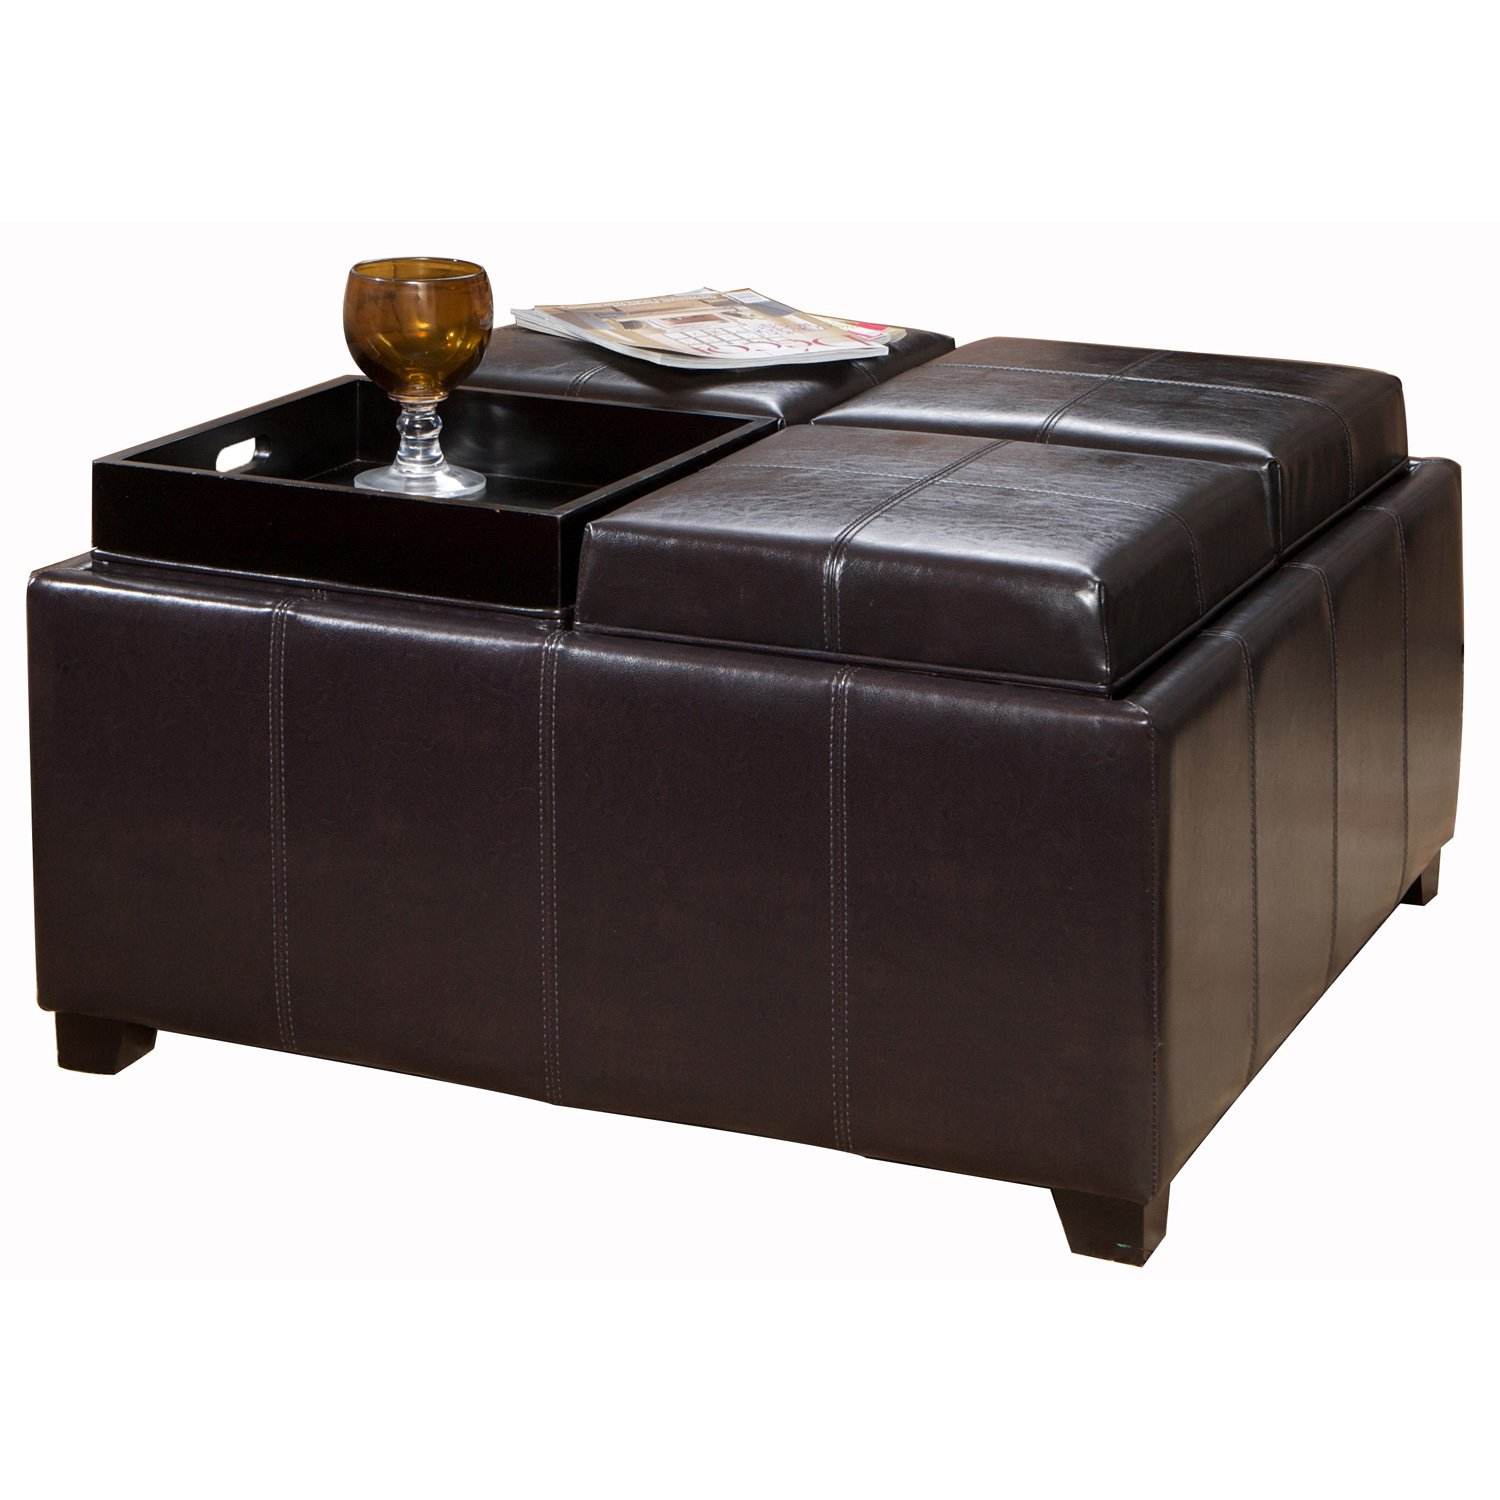 Leather Square Black Ottoman Coffee Cocktail Table Tray 35 X 35